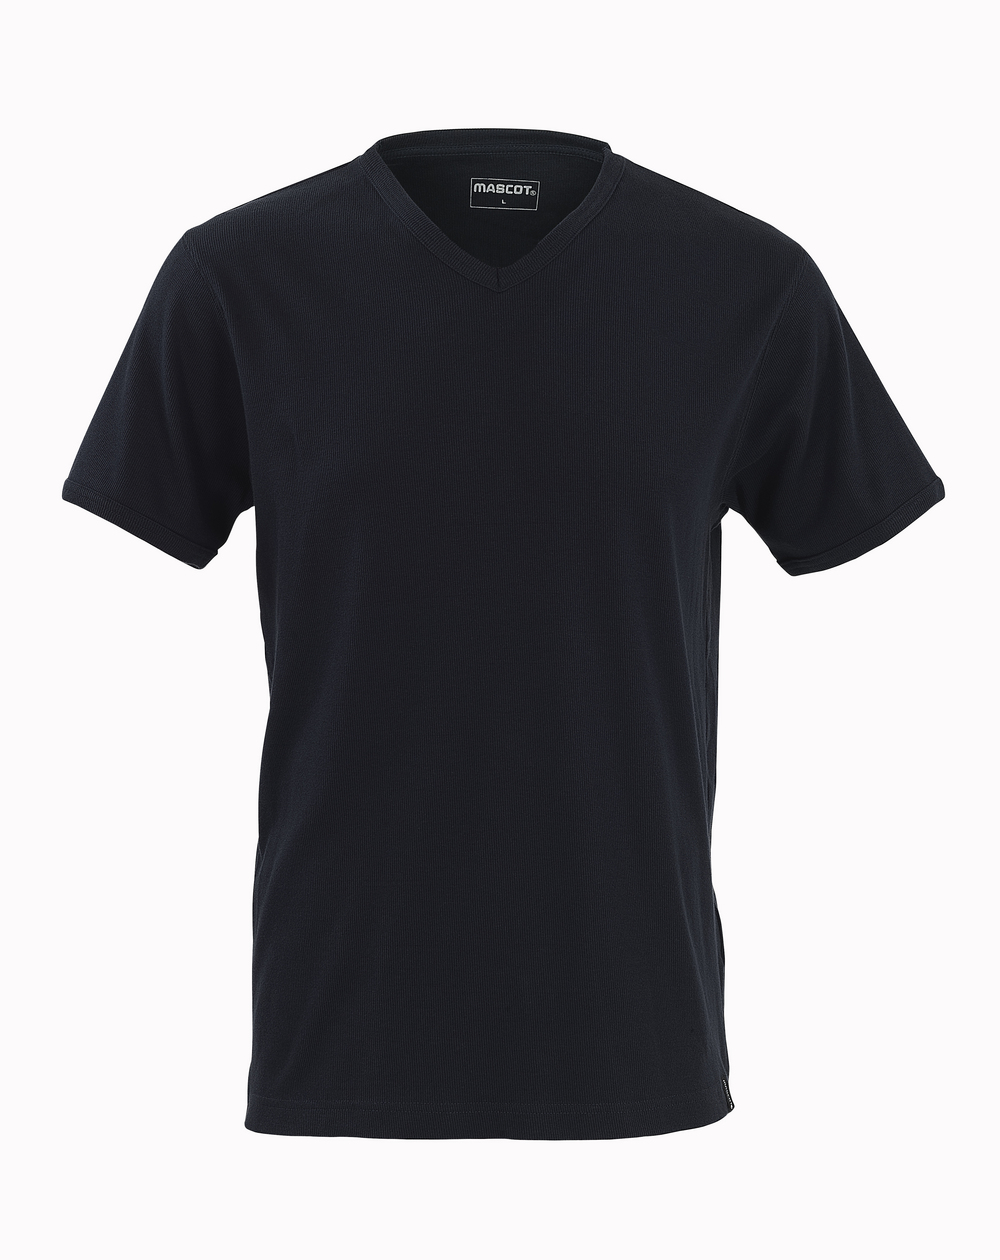 50401-865-010 T-shirt - dark navy